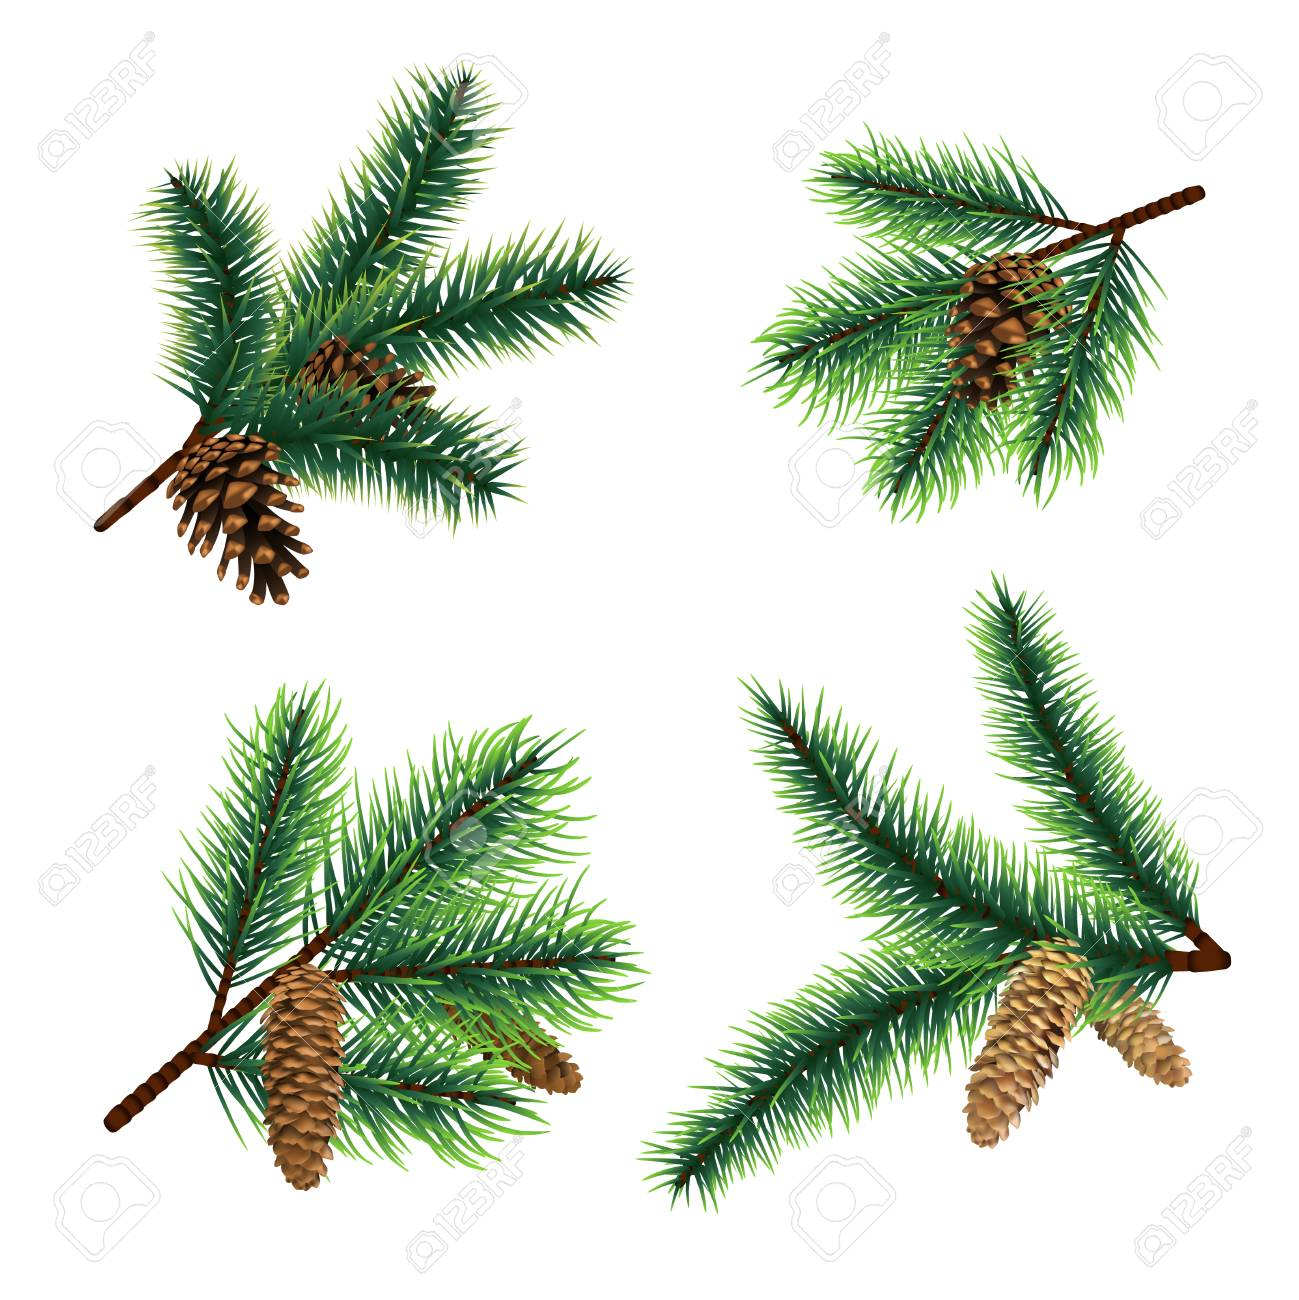 Fir Branch Christmas Tree Branches With Cones Pine Xmas Vector